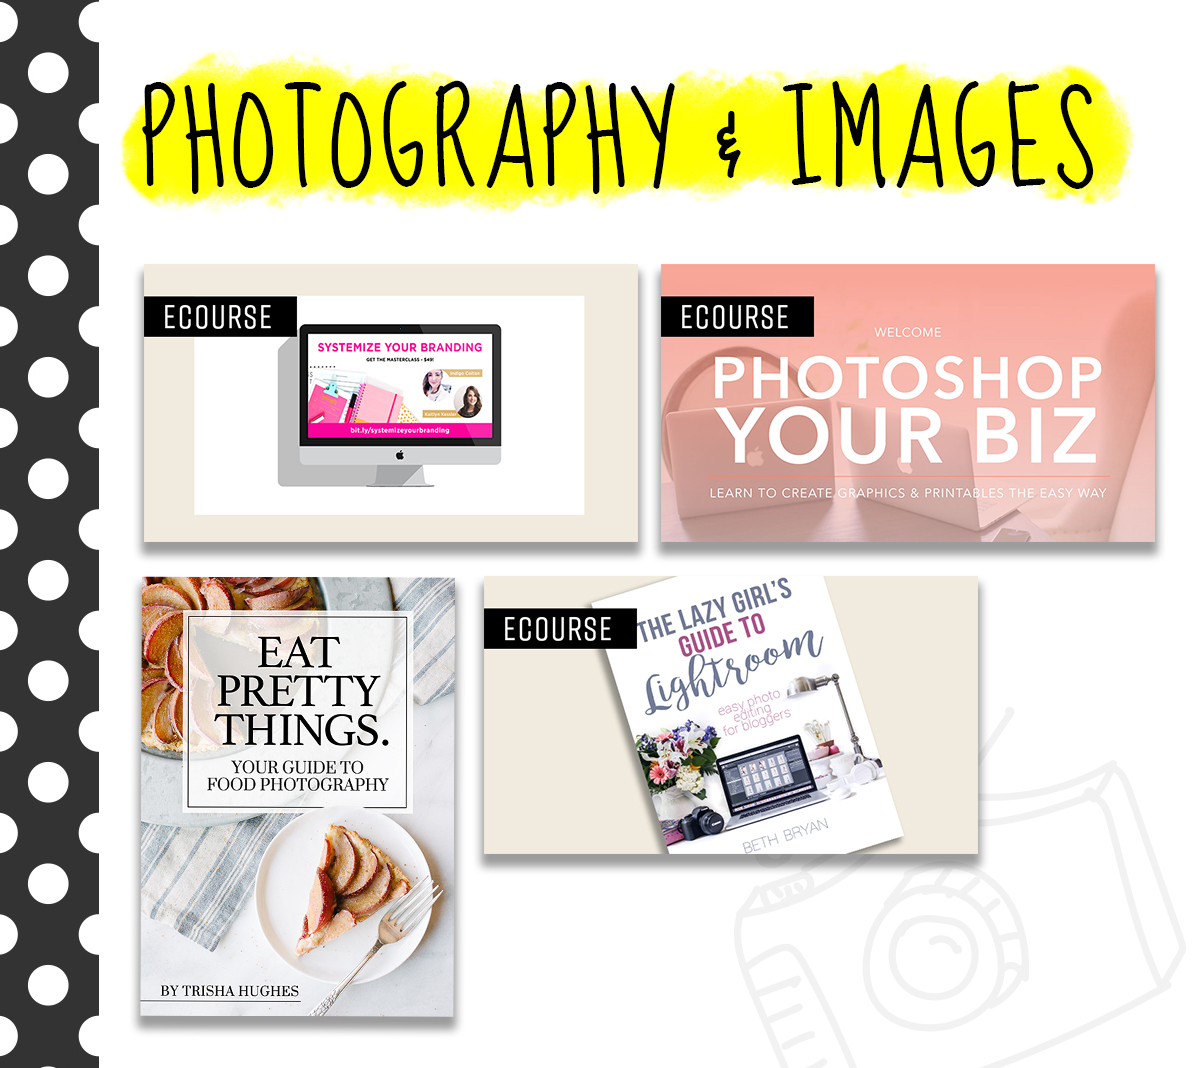 photography_and_images